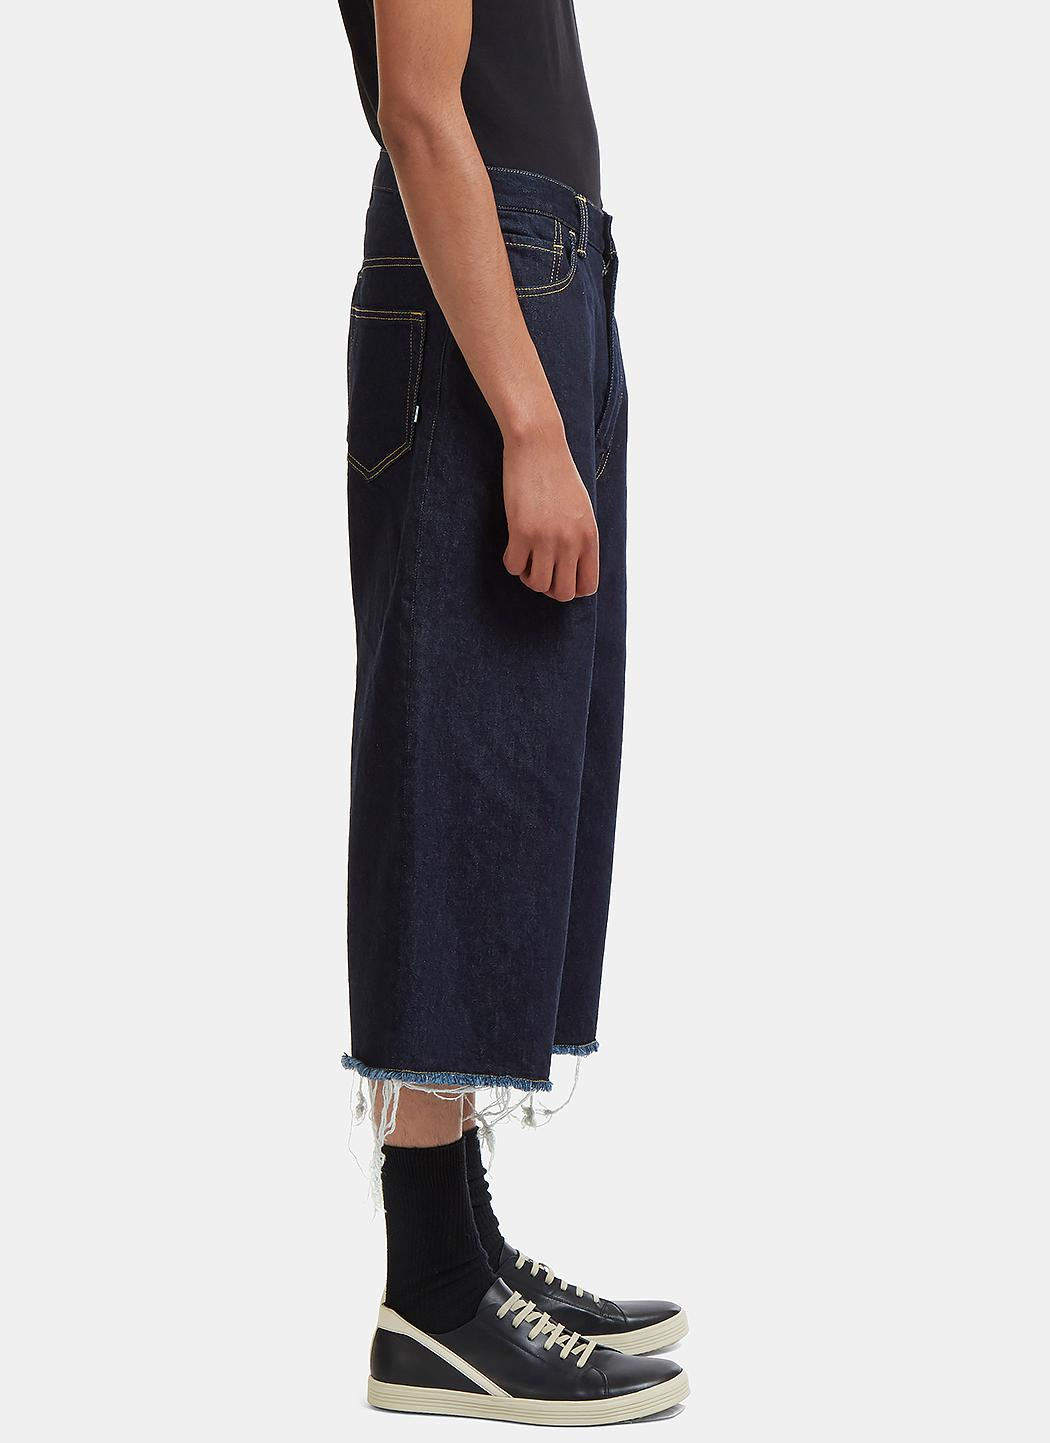 Cheap Many Kinds Of Oversized Raw-Cut Cropped Jeans Facetasm Release Dates Authentic Fake Cheap Online Low Price Fee Shipping Online YqdihA8